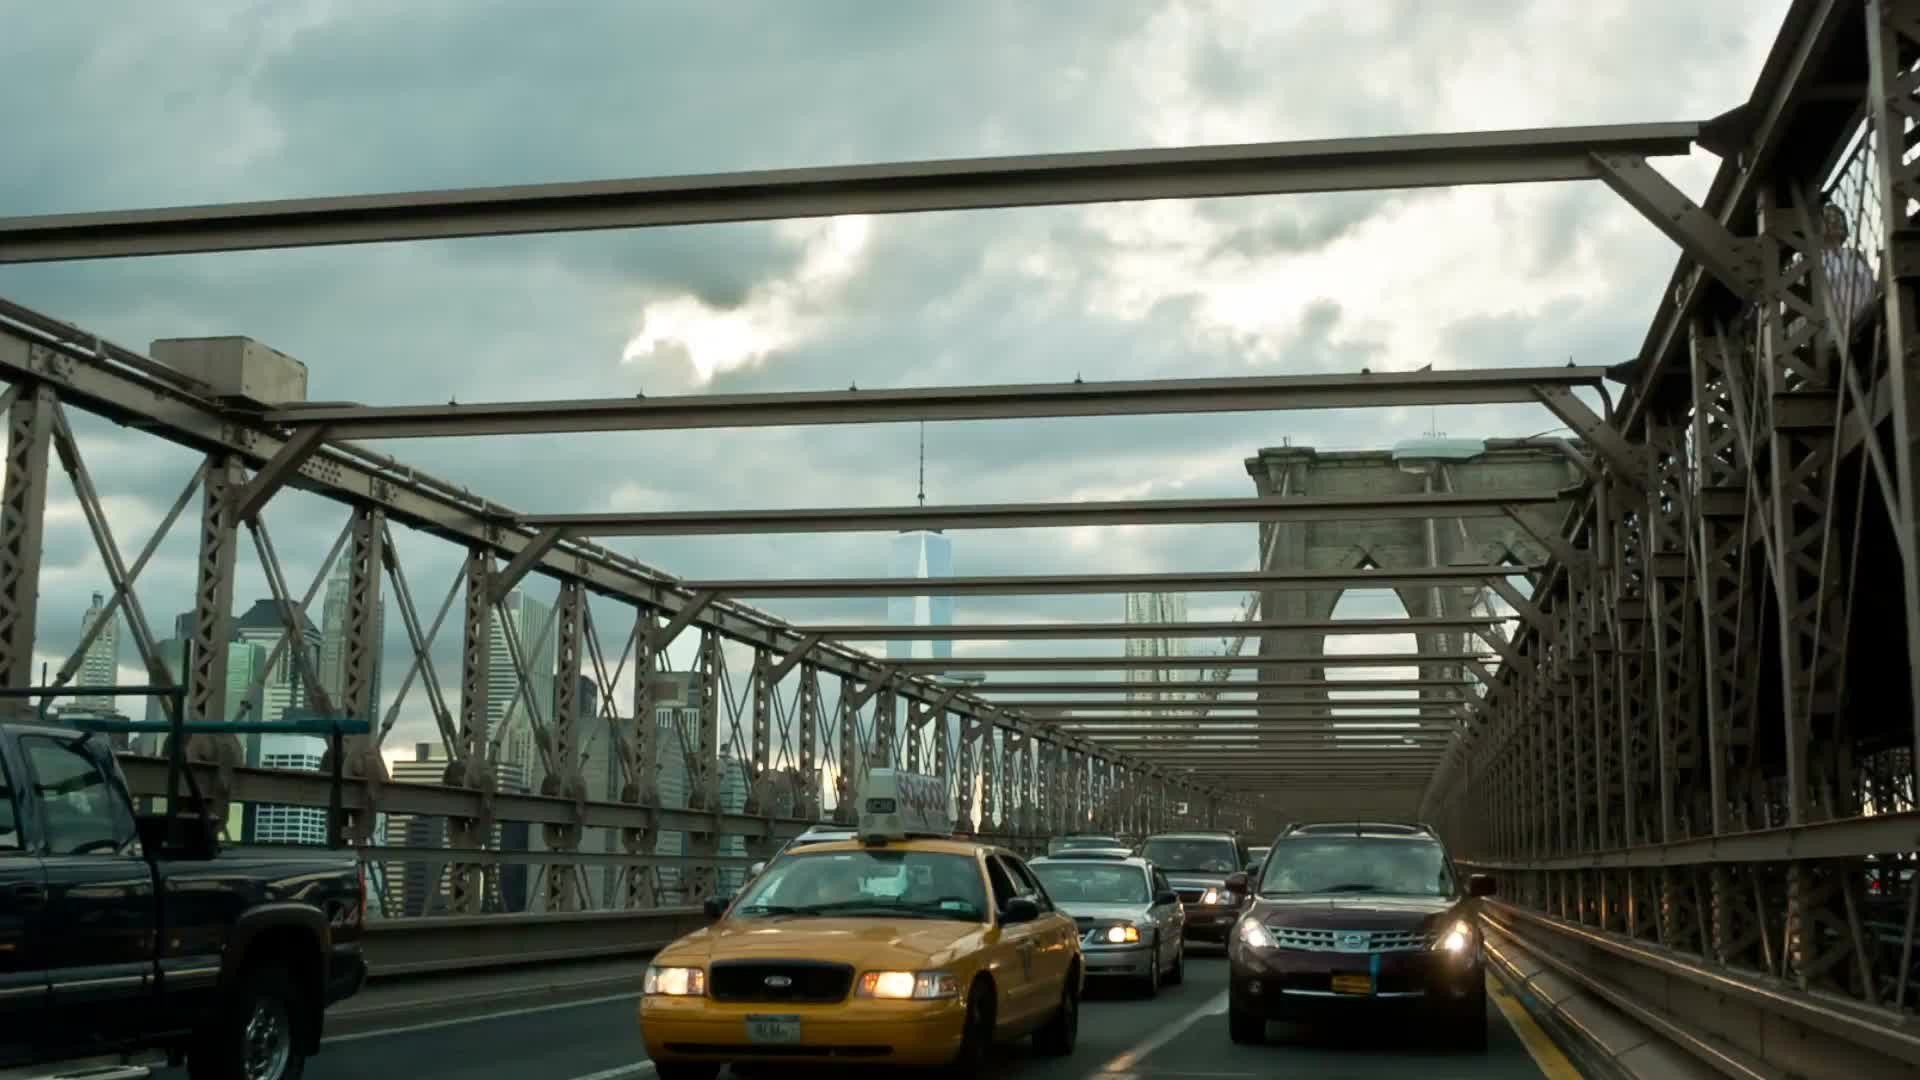 taxi cab crossing Brooklyn Bridge - cars driving in traffic on cloudy day in NYC